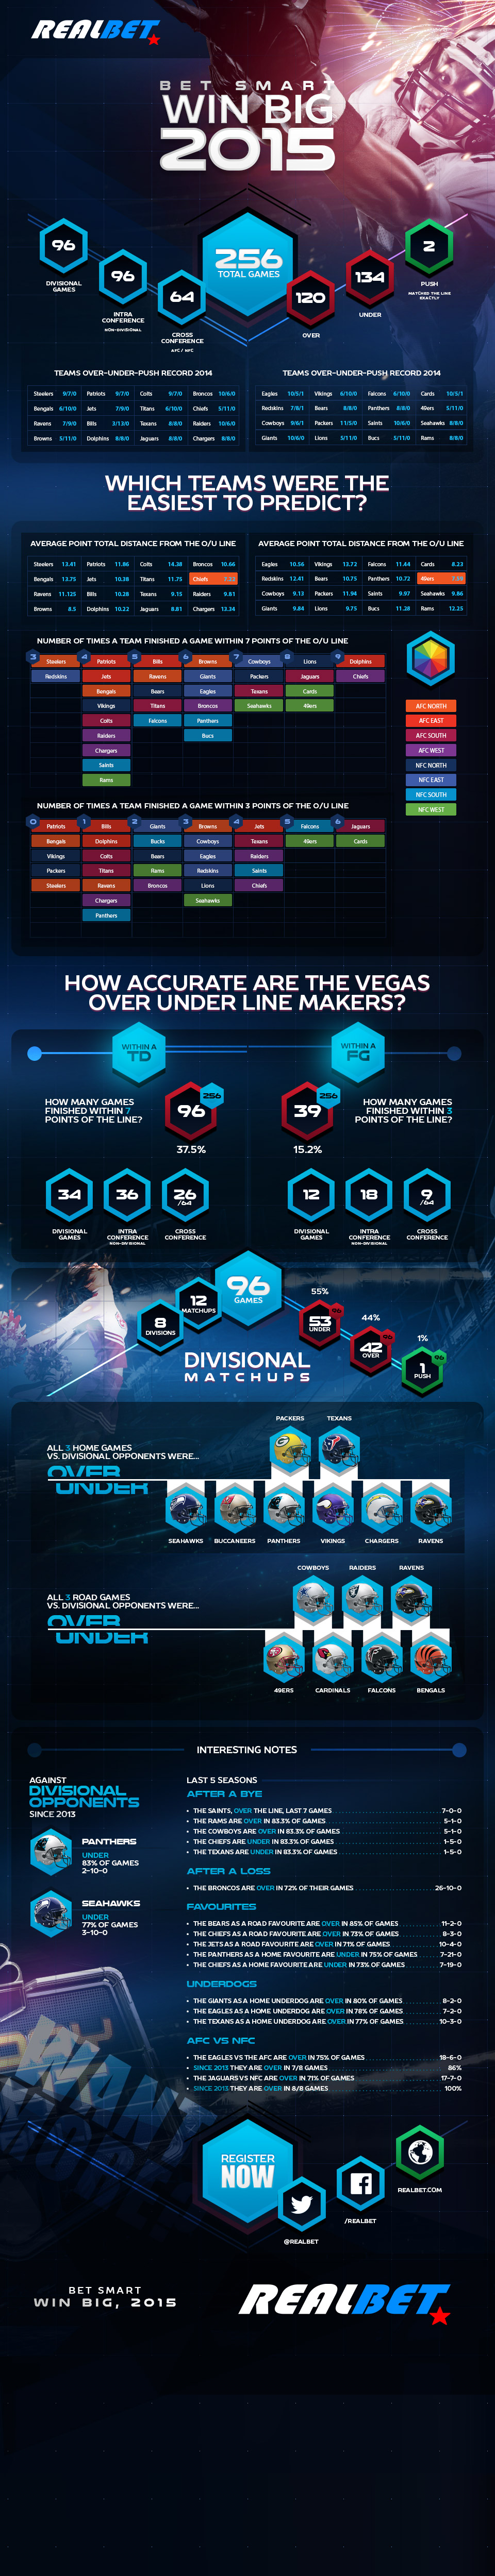 Unders & Overs U/O Sports Betting Infographic for 2015